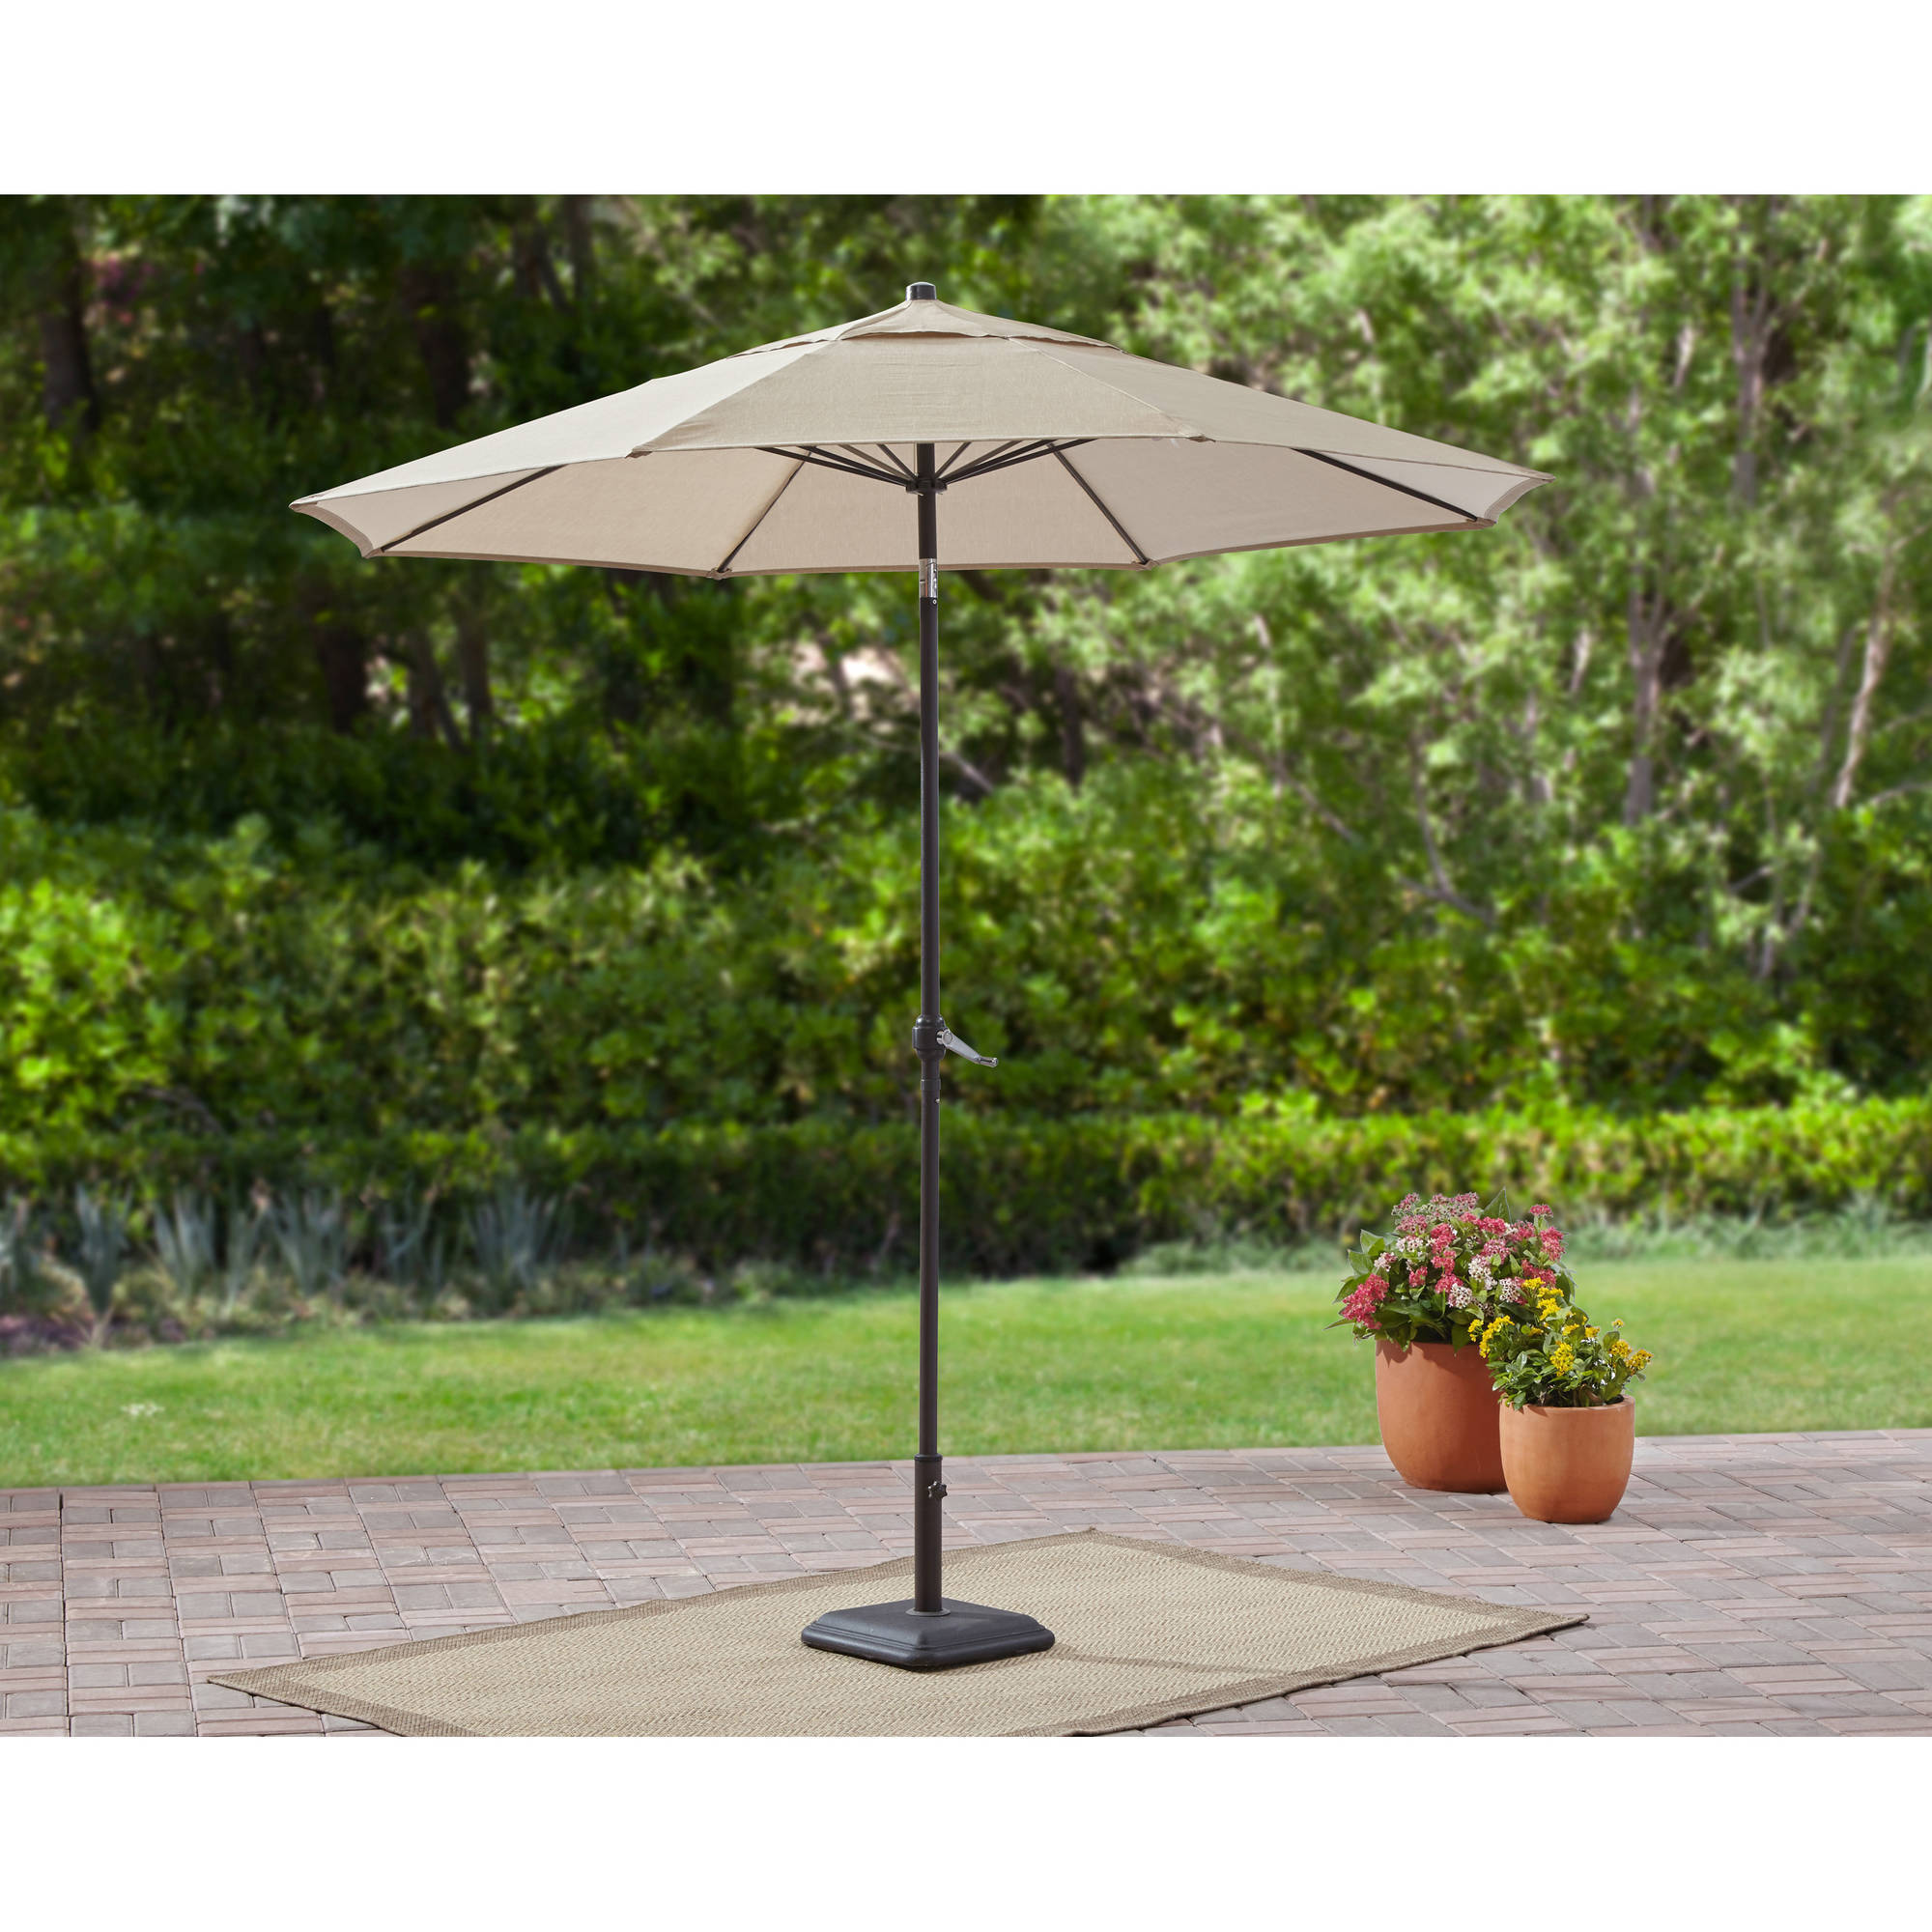 Mainstays Forest Hills 8' Umbrella